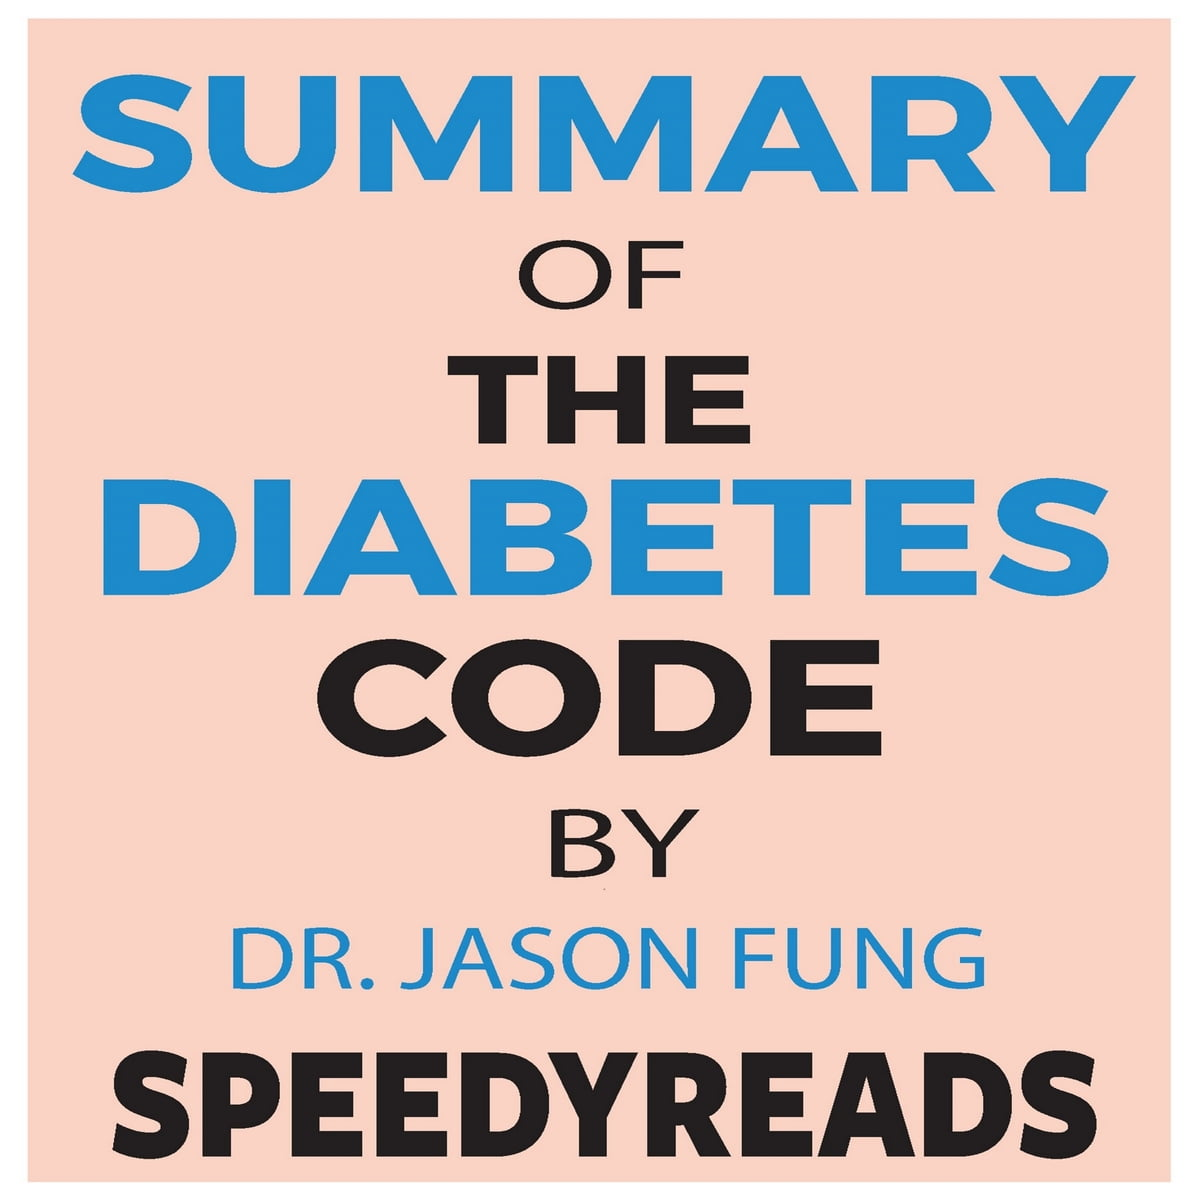 Summary of The Diabetes Code: Prevent and Reverse Type 2 Diabetes Naturally  by Jason Fung- Finish Entire Book in 15 Minutes audiobook by SpeedyReads -